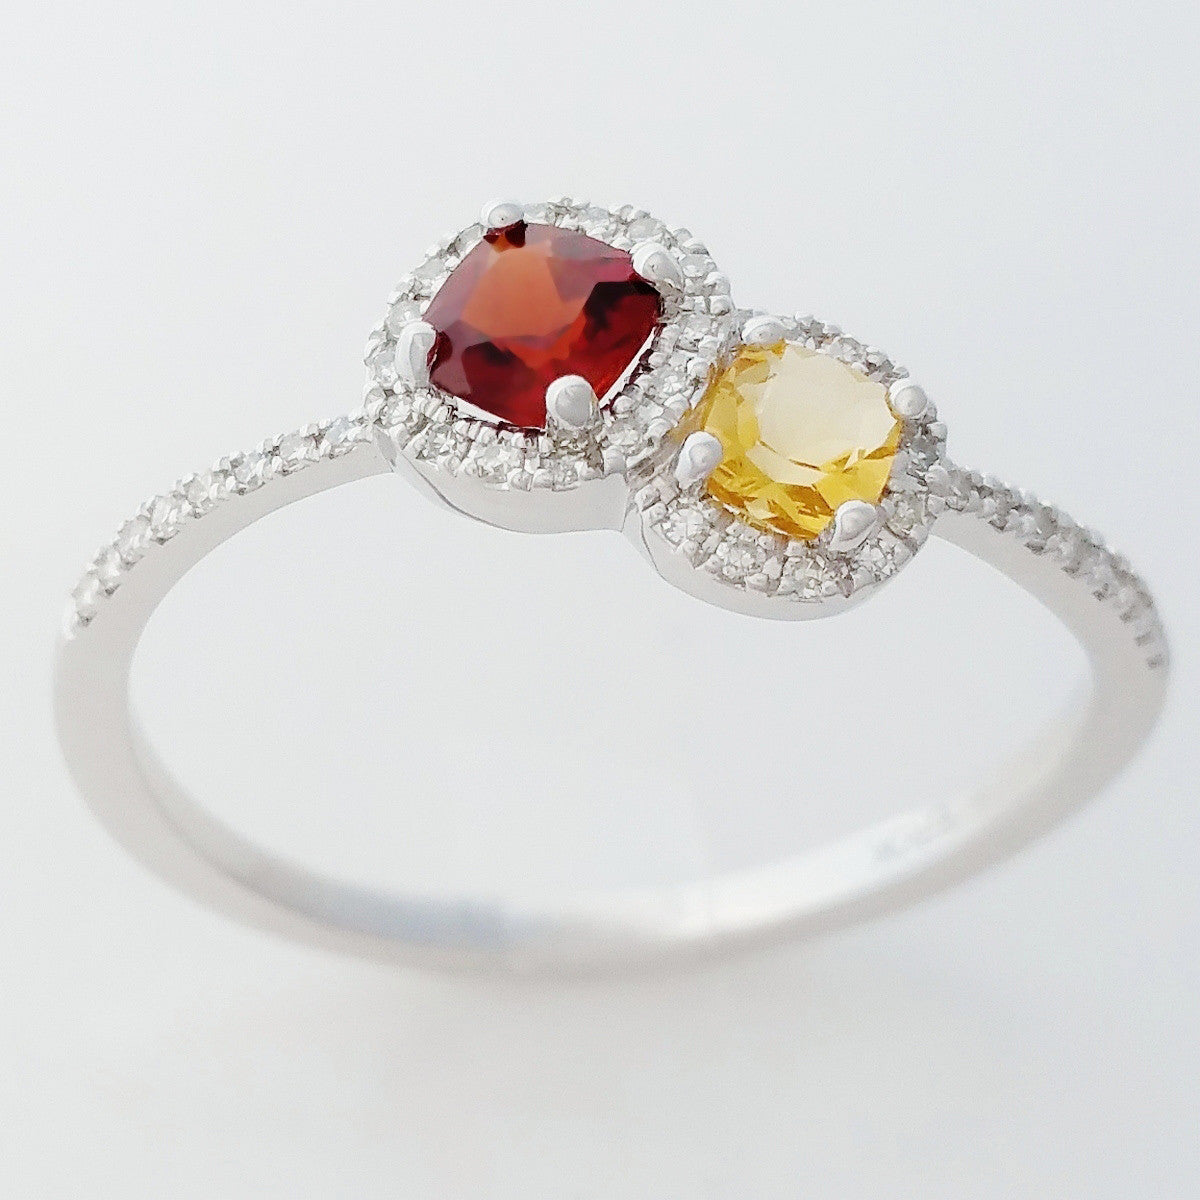 9K SOLID WHITE GOLD NATURAL CITRINE & GARNET RING WITH 40 DIAMONDS.